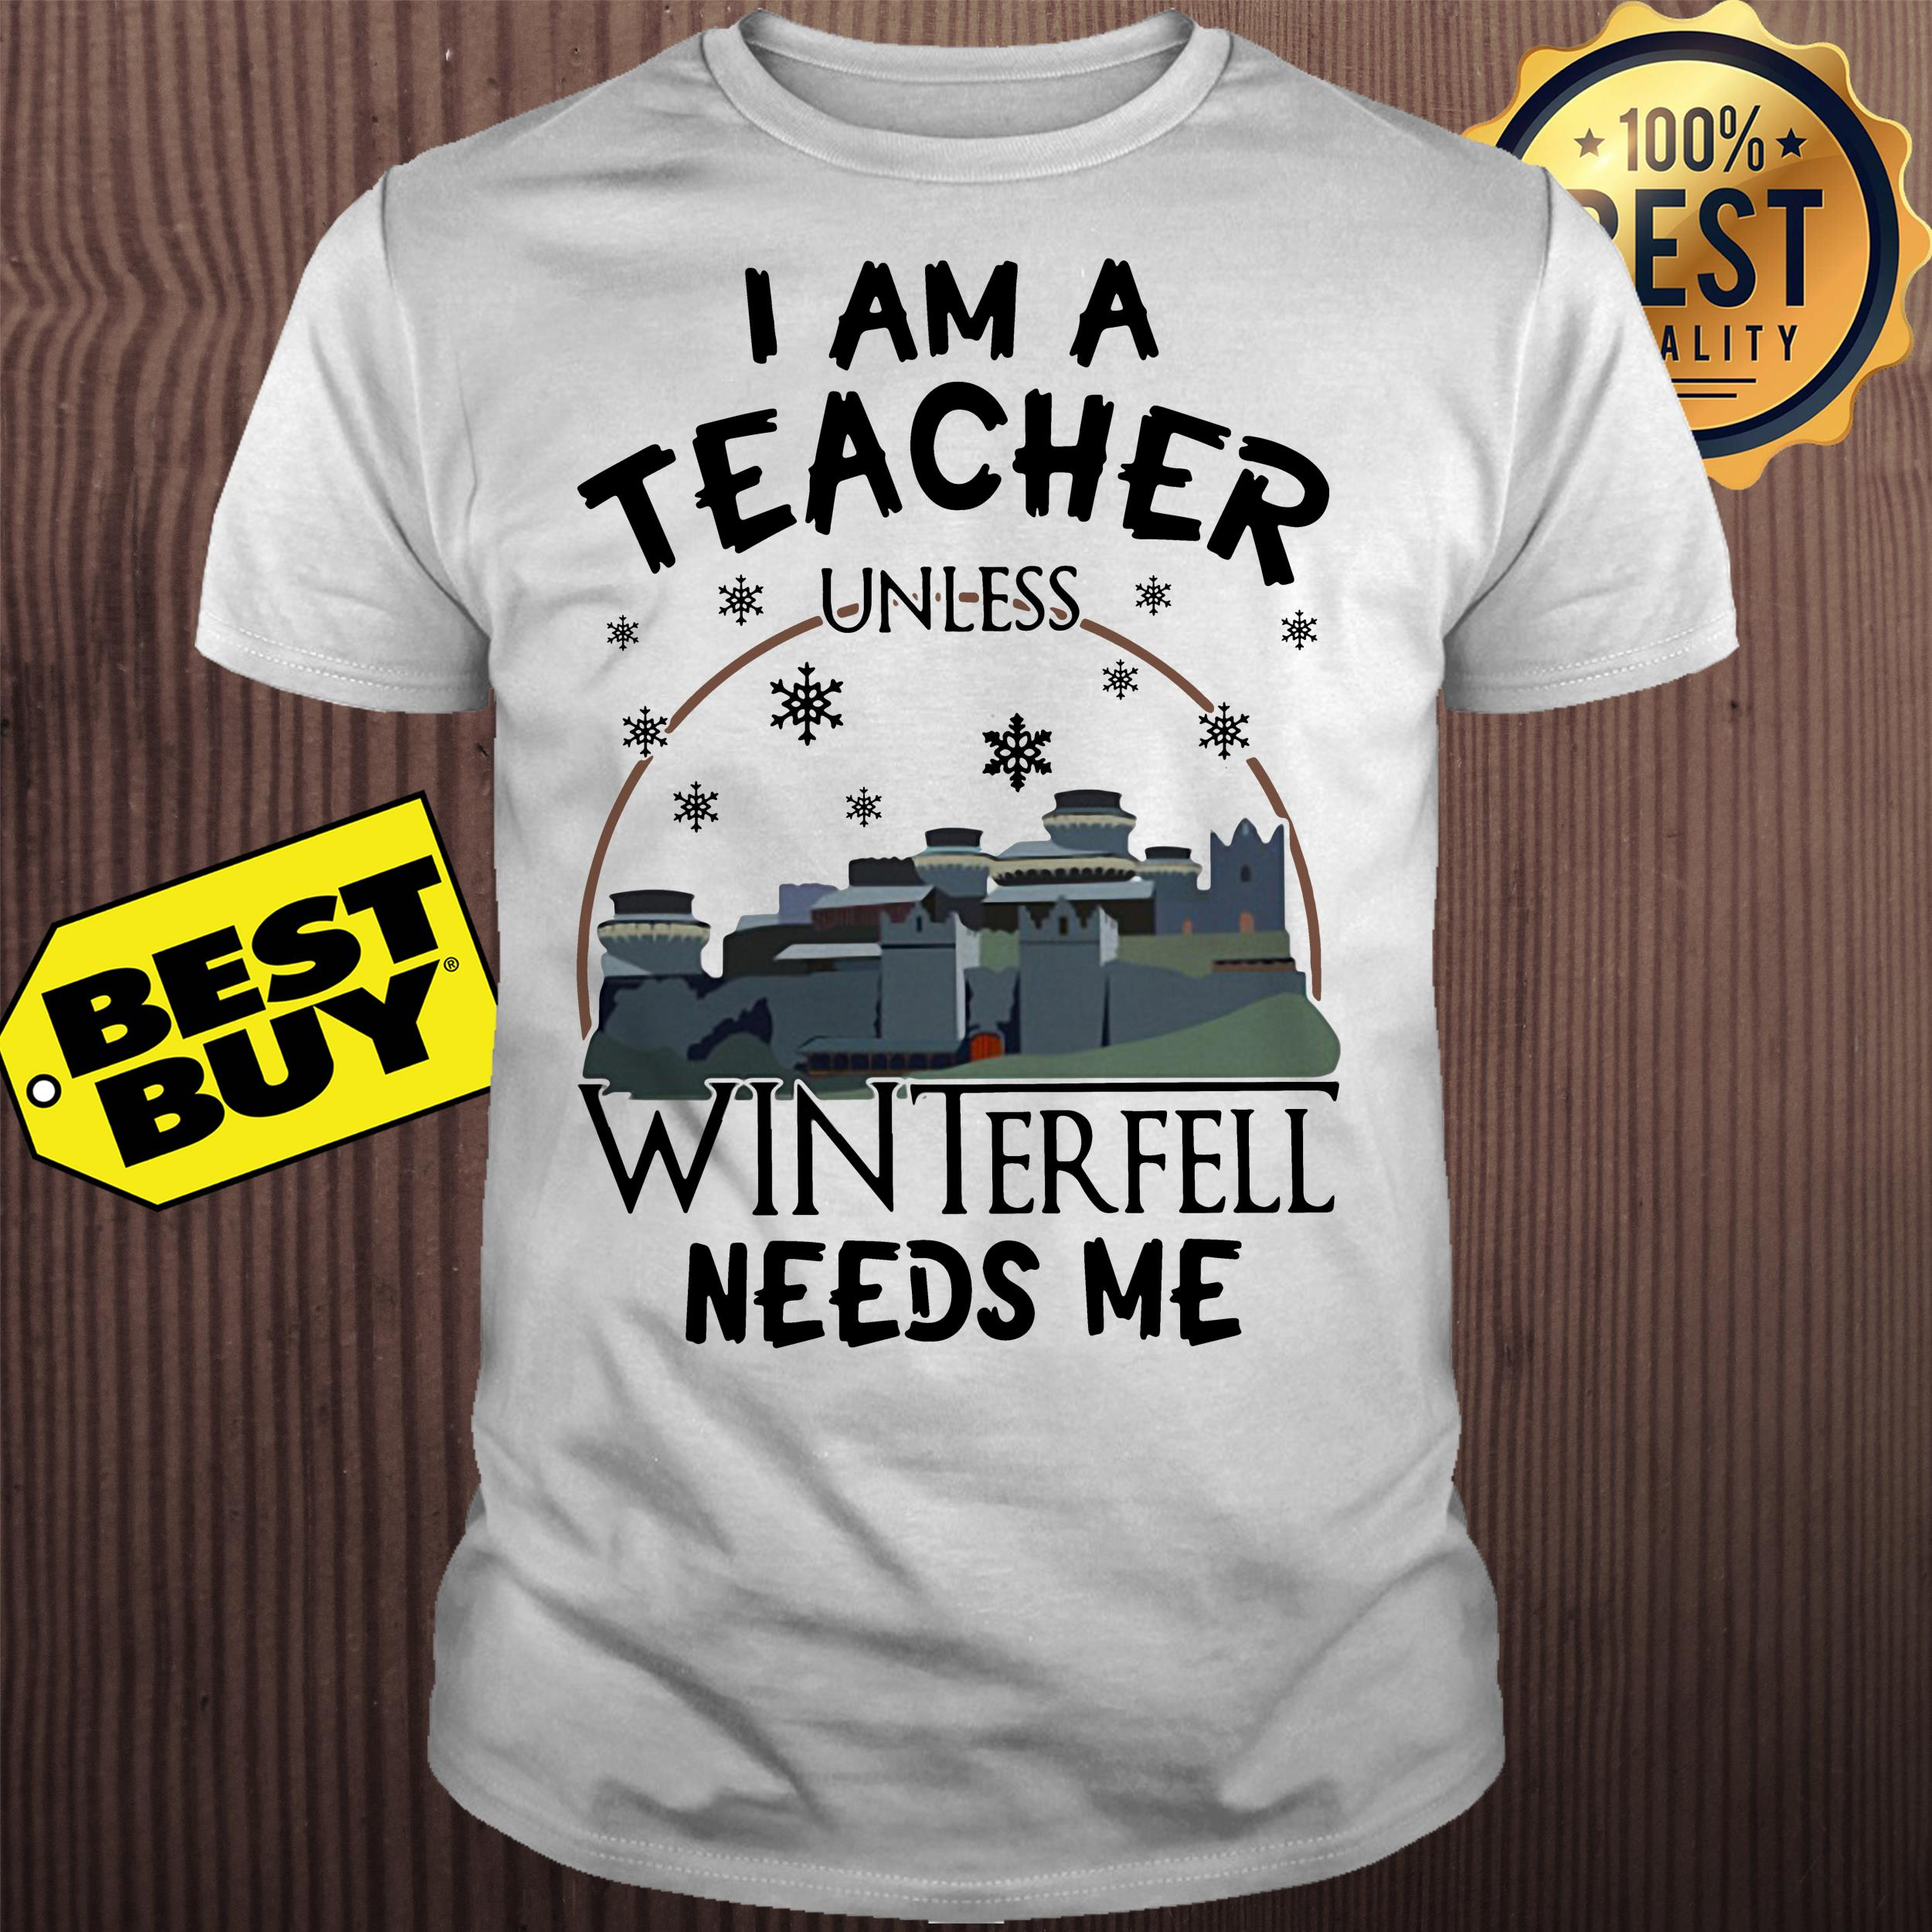 I am a teacher unless winterfell needs me shirt